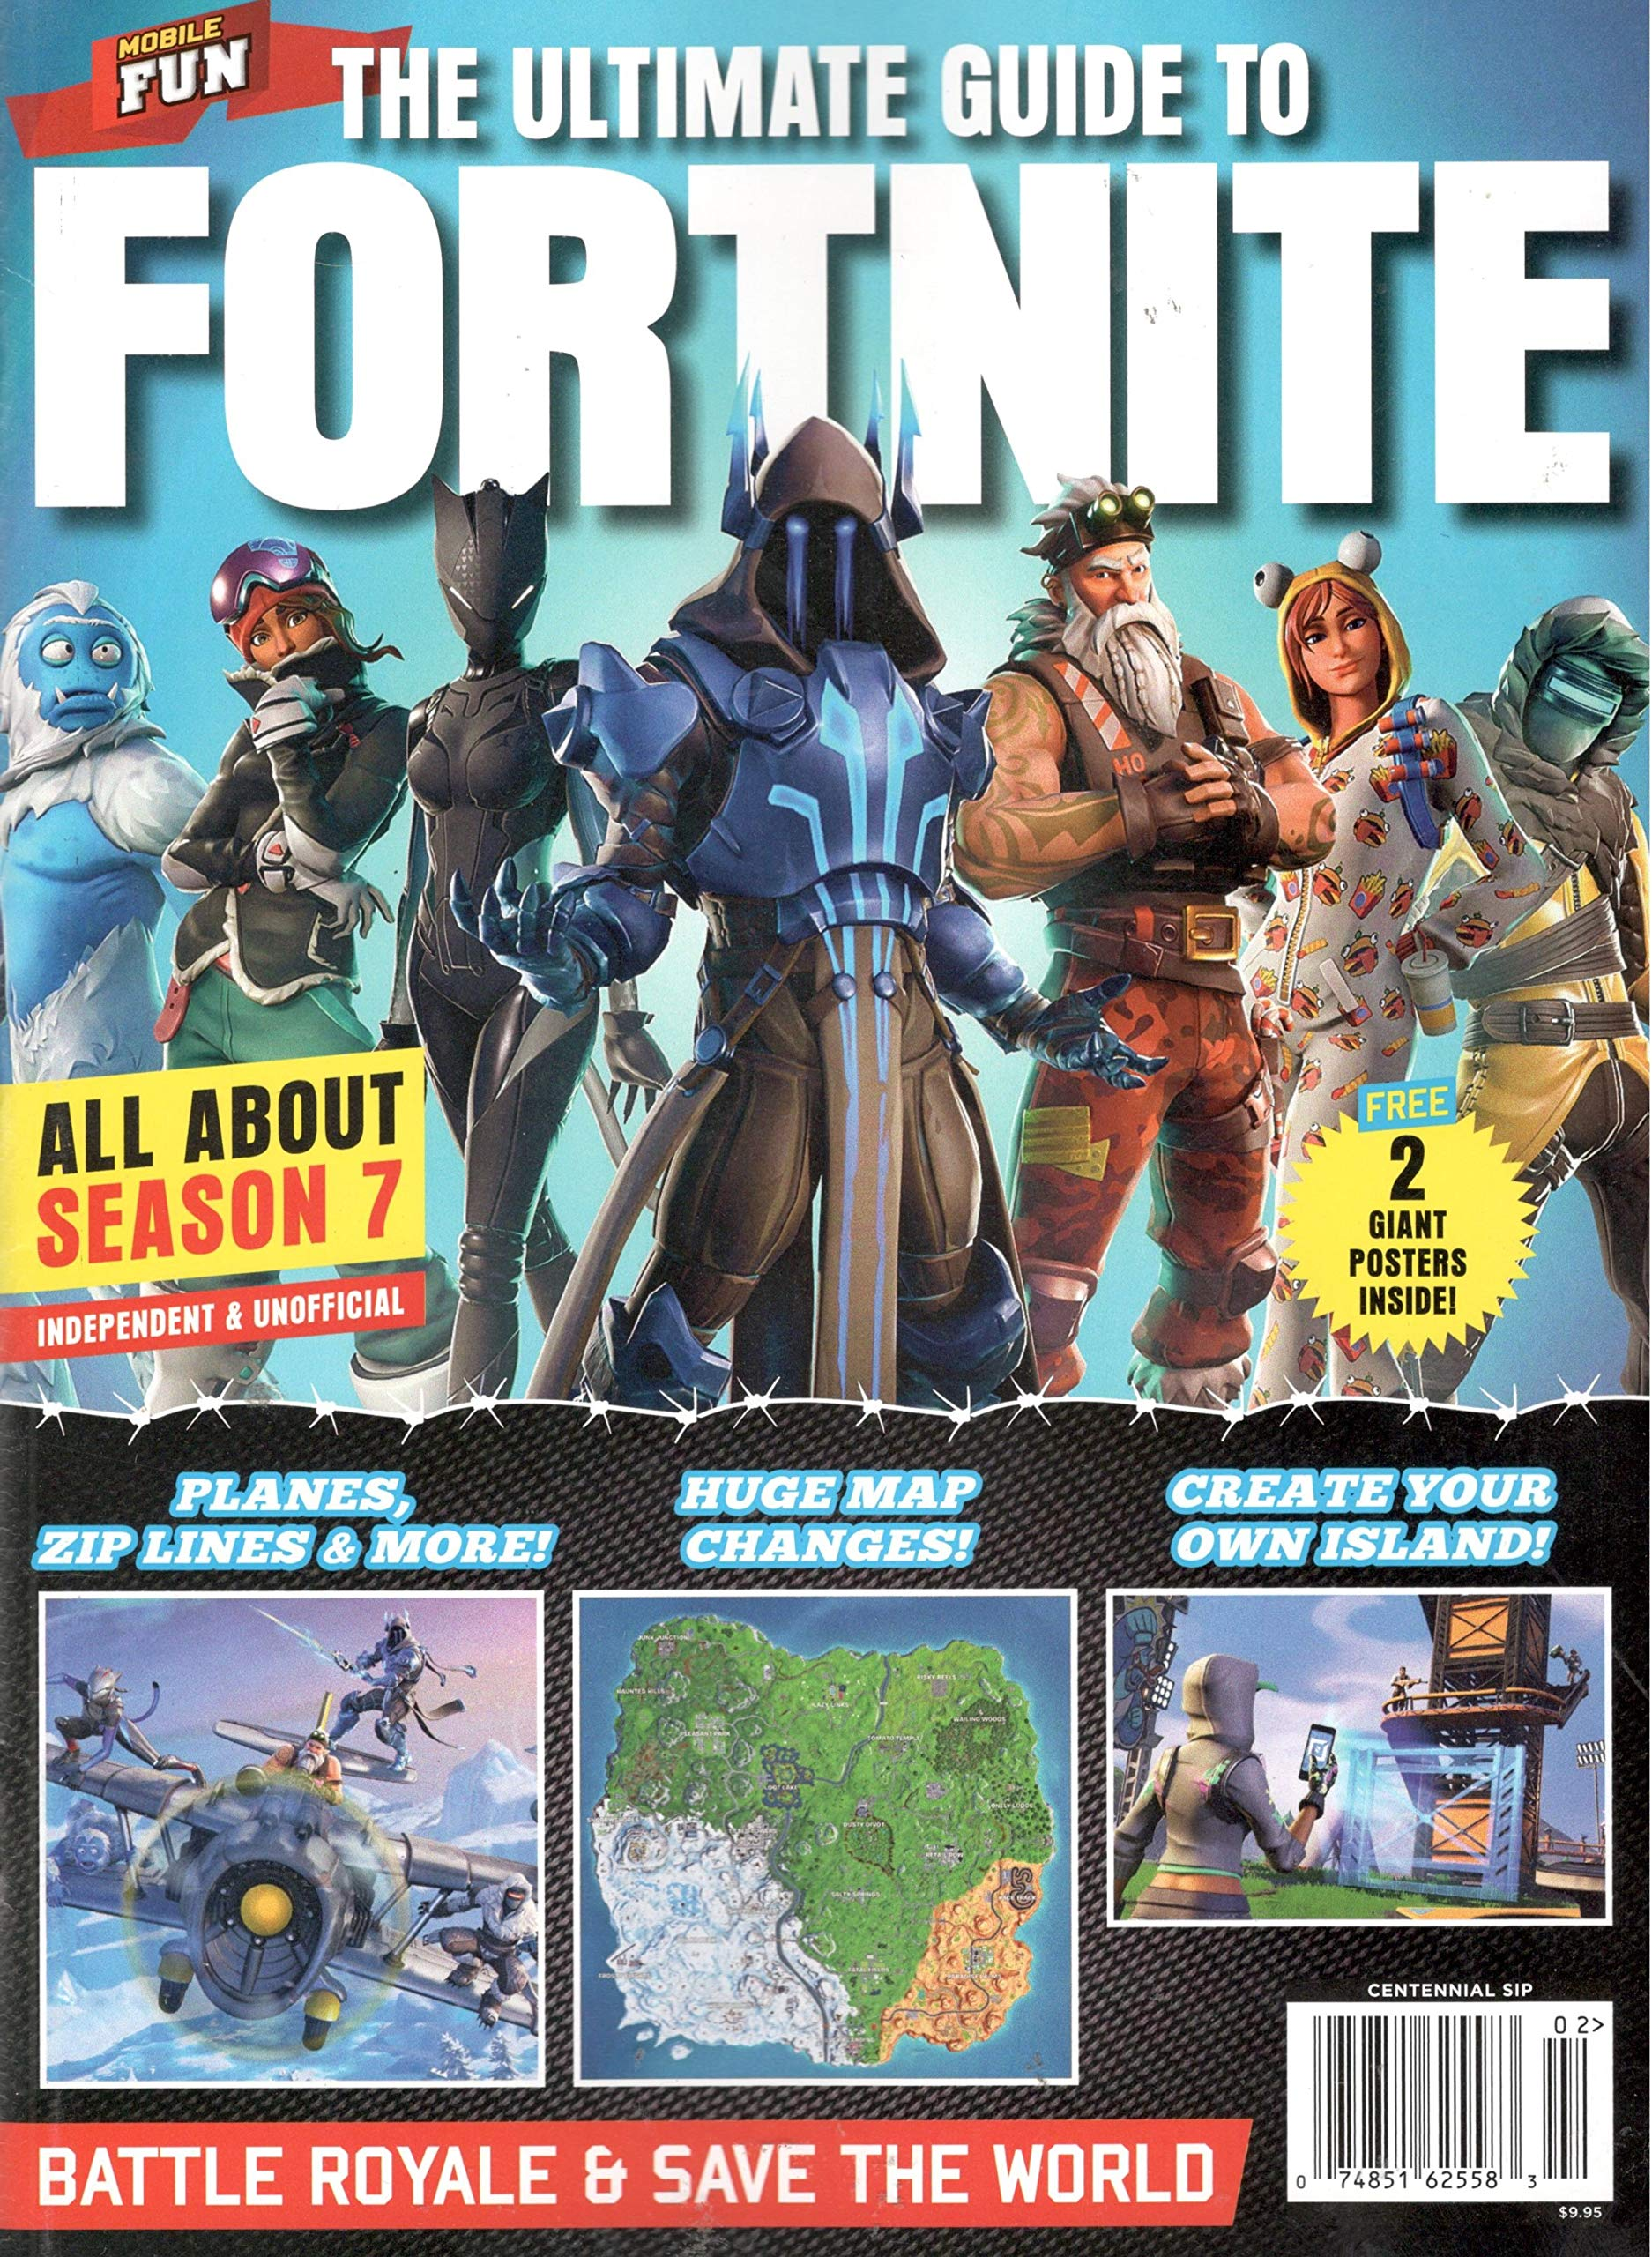 the ultimate guide to fortnite all about season 7 battle royale save the world single issue magazine 2019 - fortnite free save the world 2019